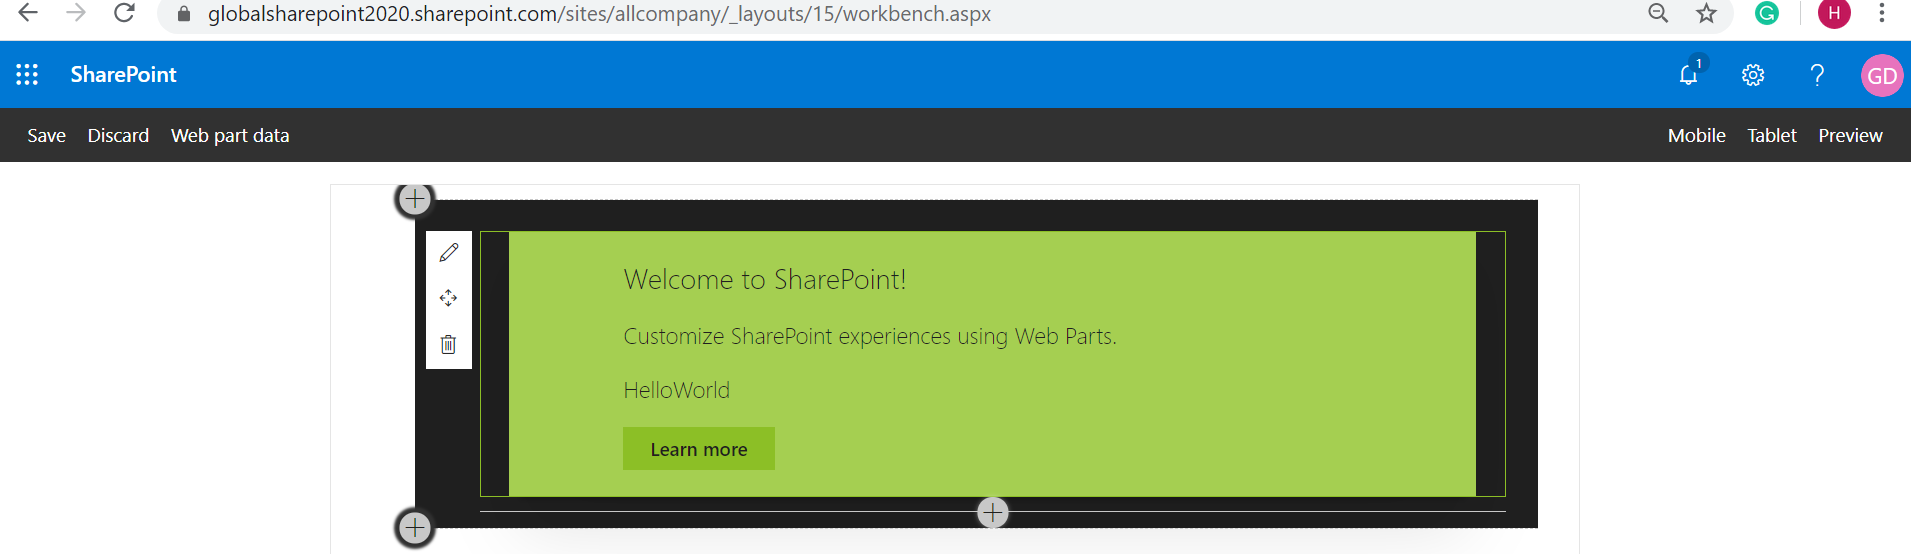 Preview of Hello World Web Part in the browser - from SharePoint Workbench